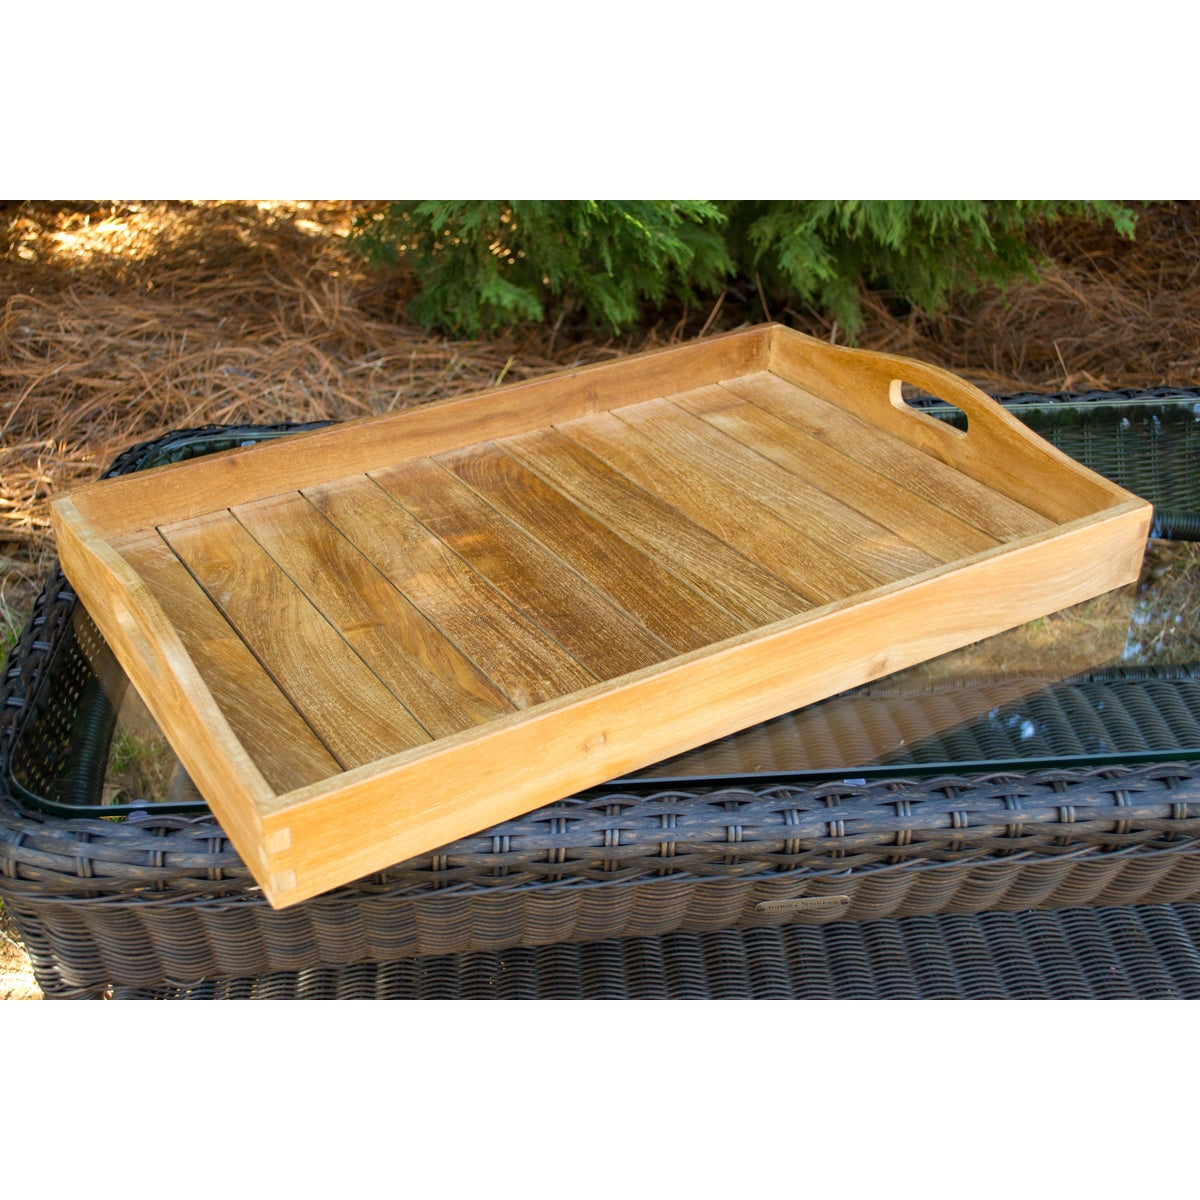 Tortuga Outdoor Jakarta Teak Serving Tray Free Shipping Today 9969893